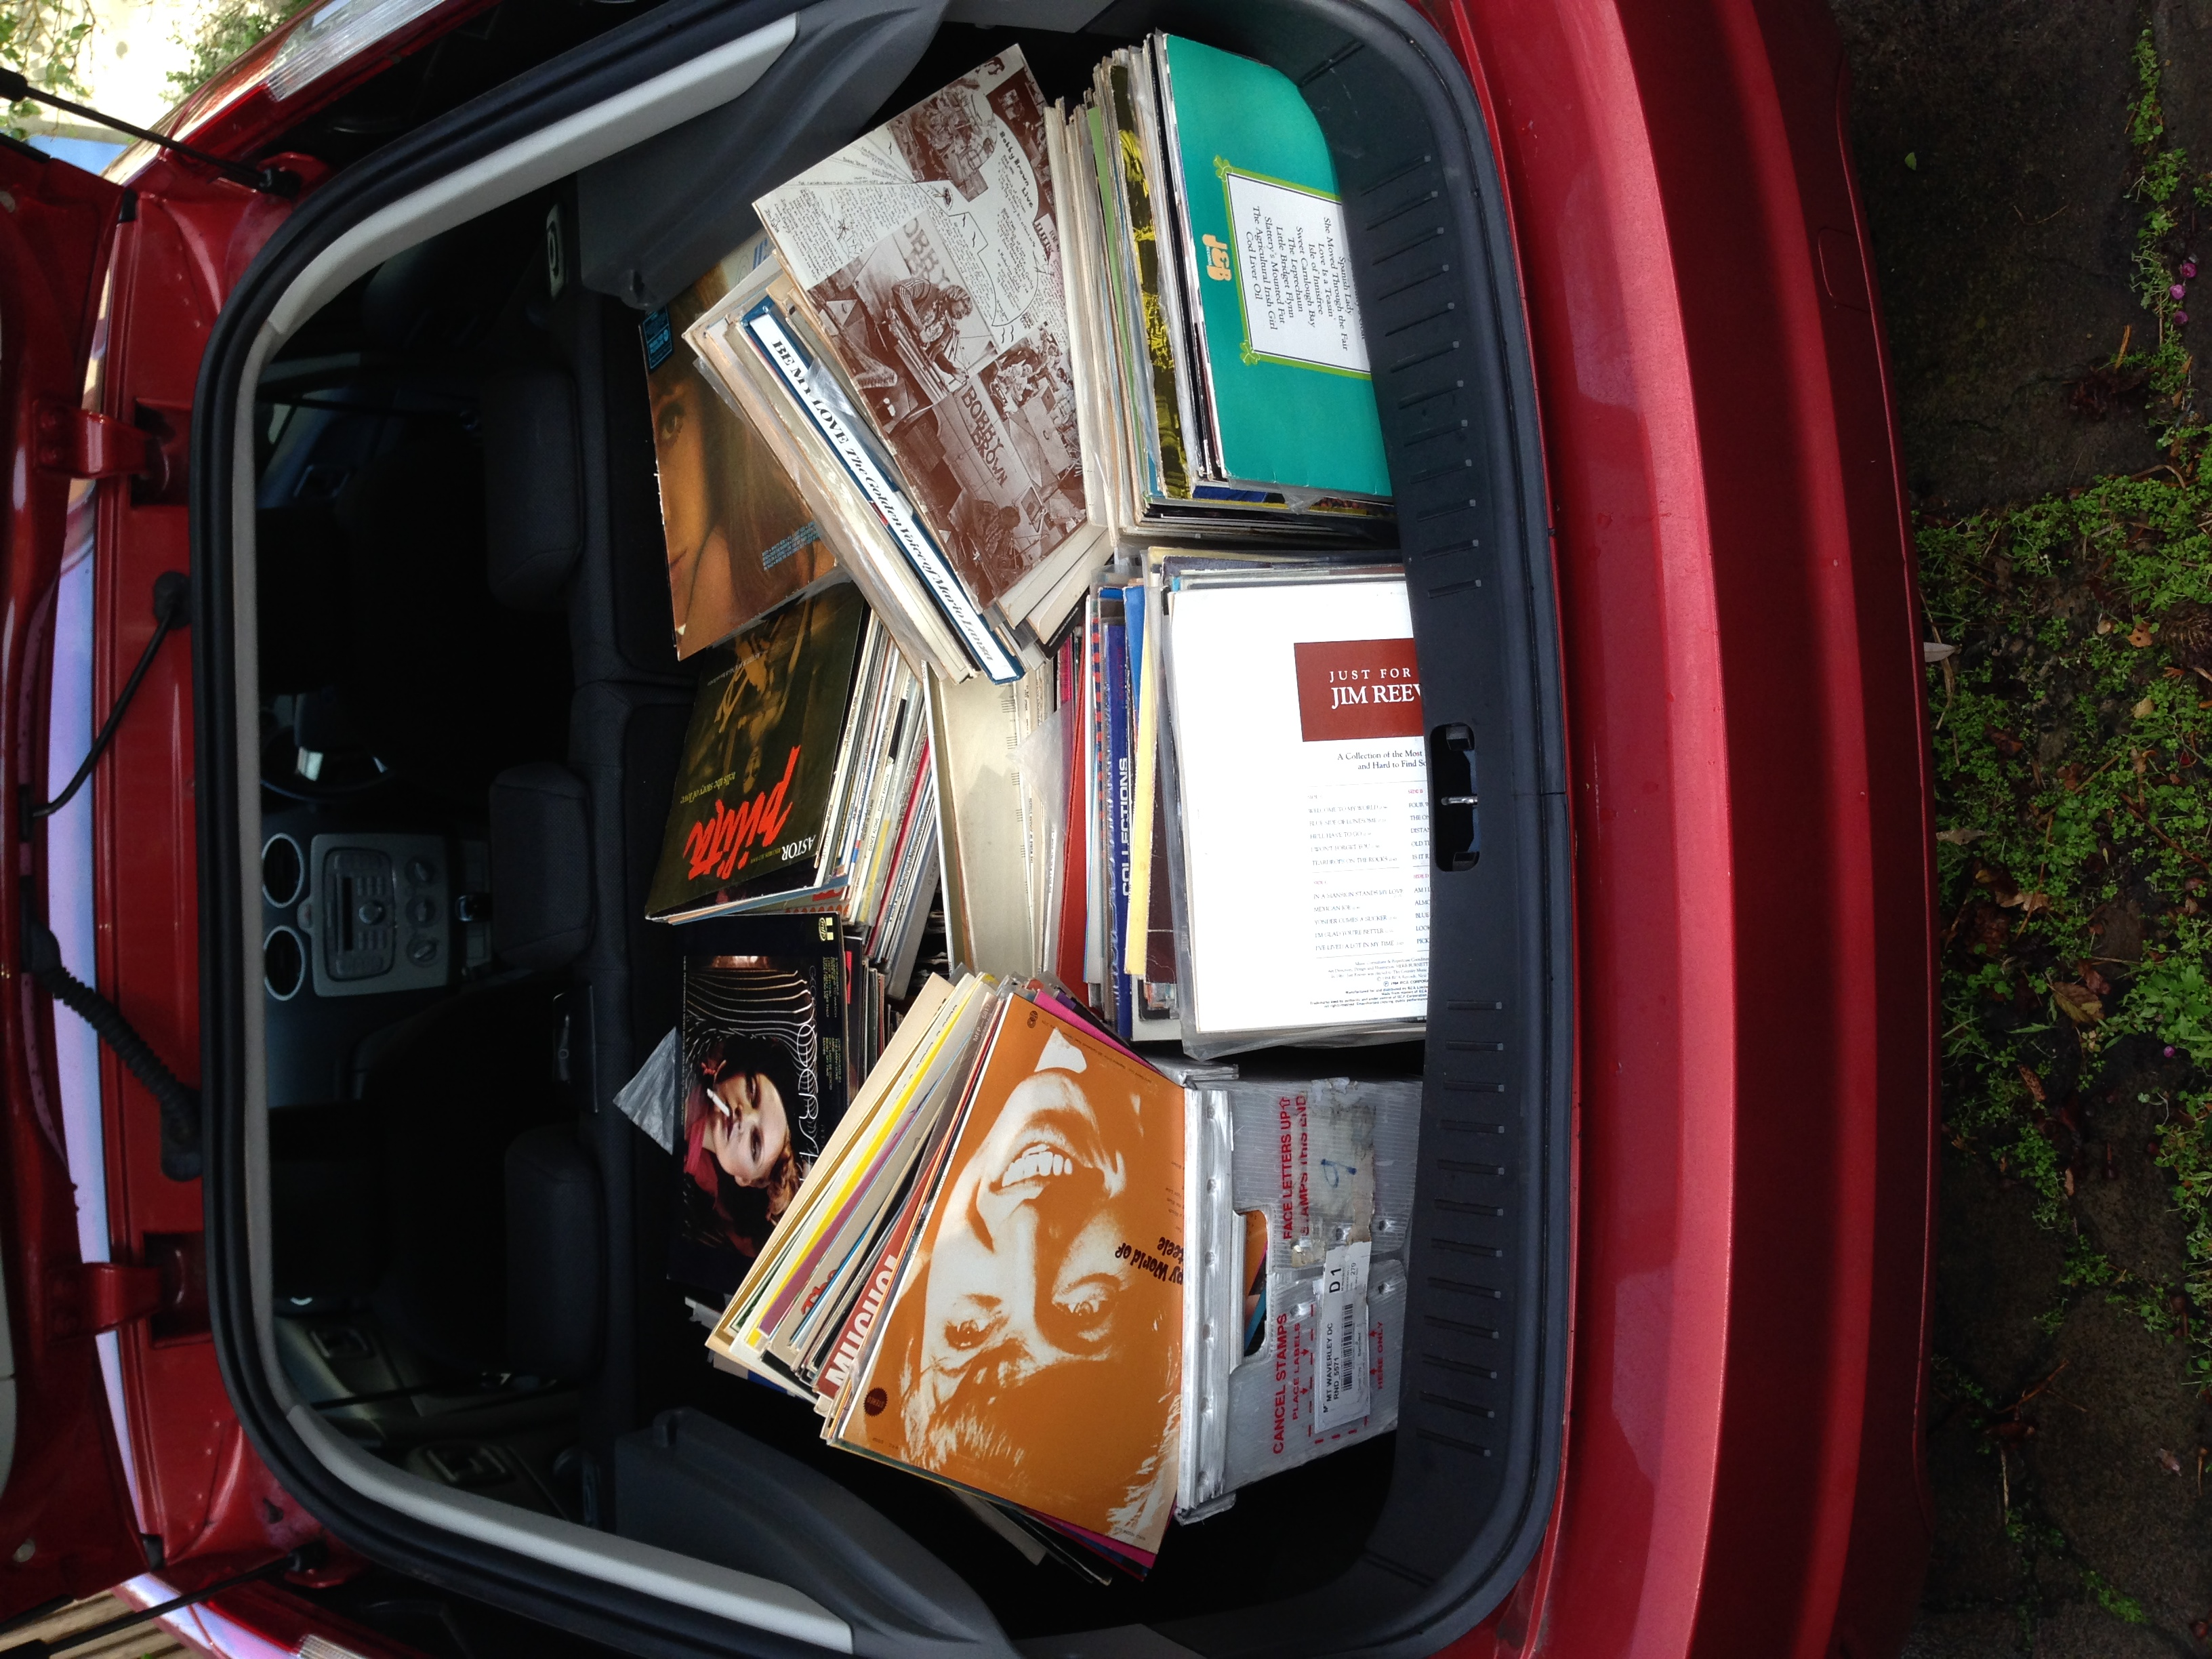 A boot load of vinyl ... Literally.